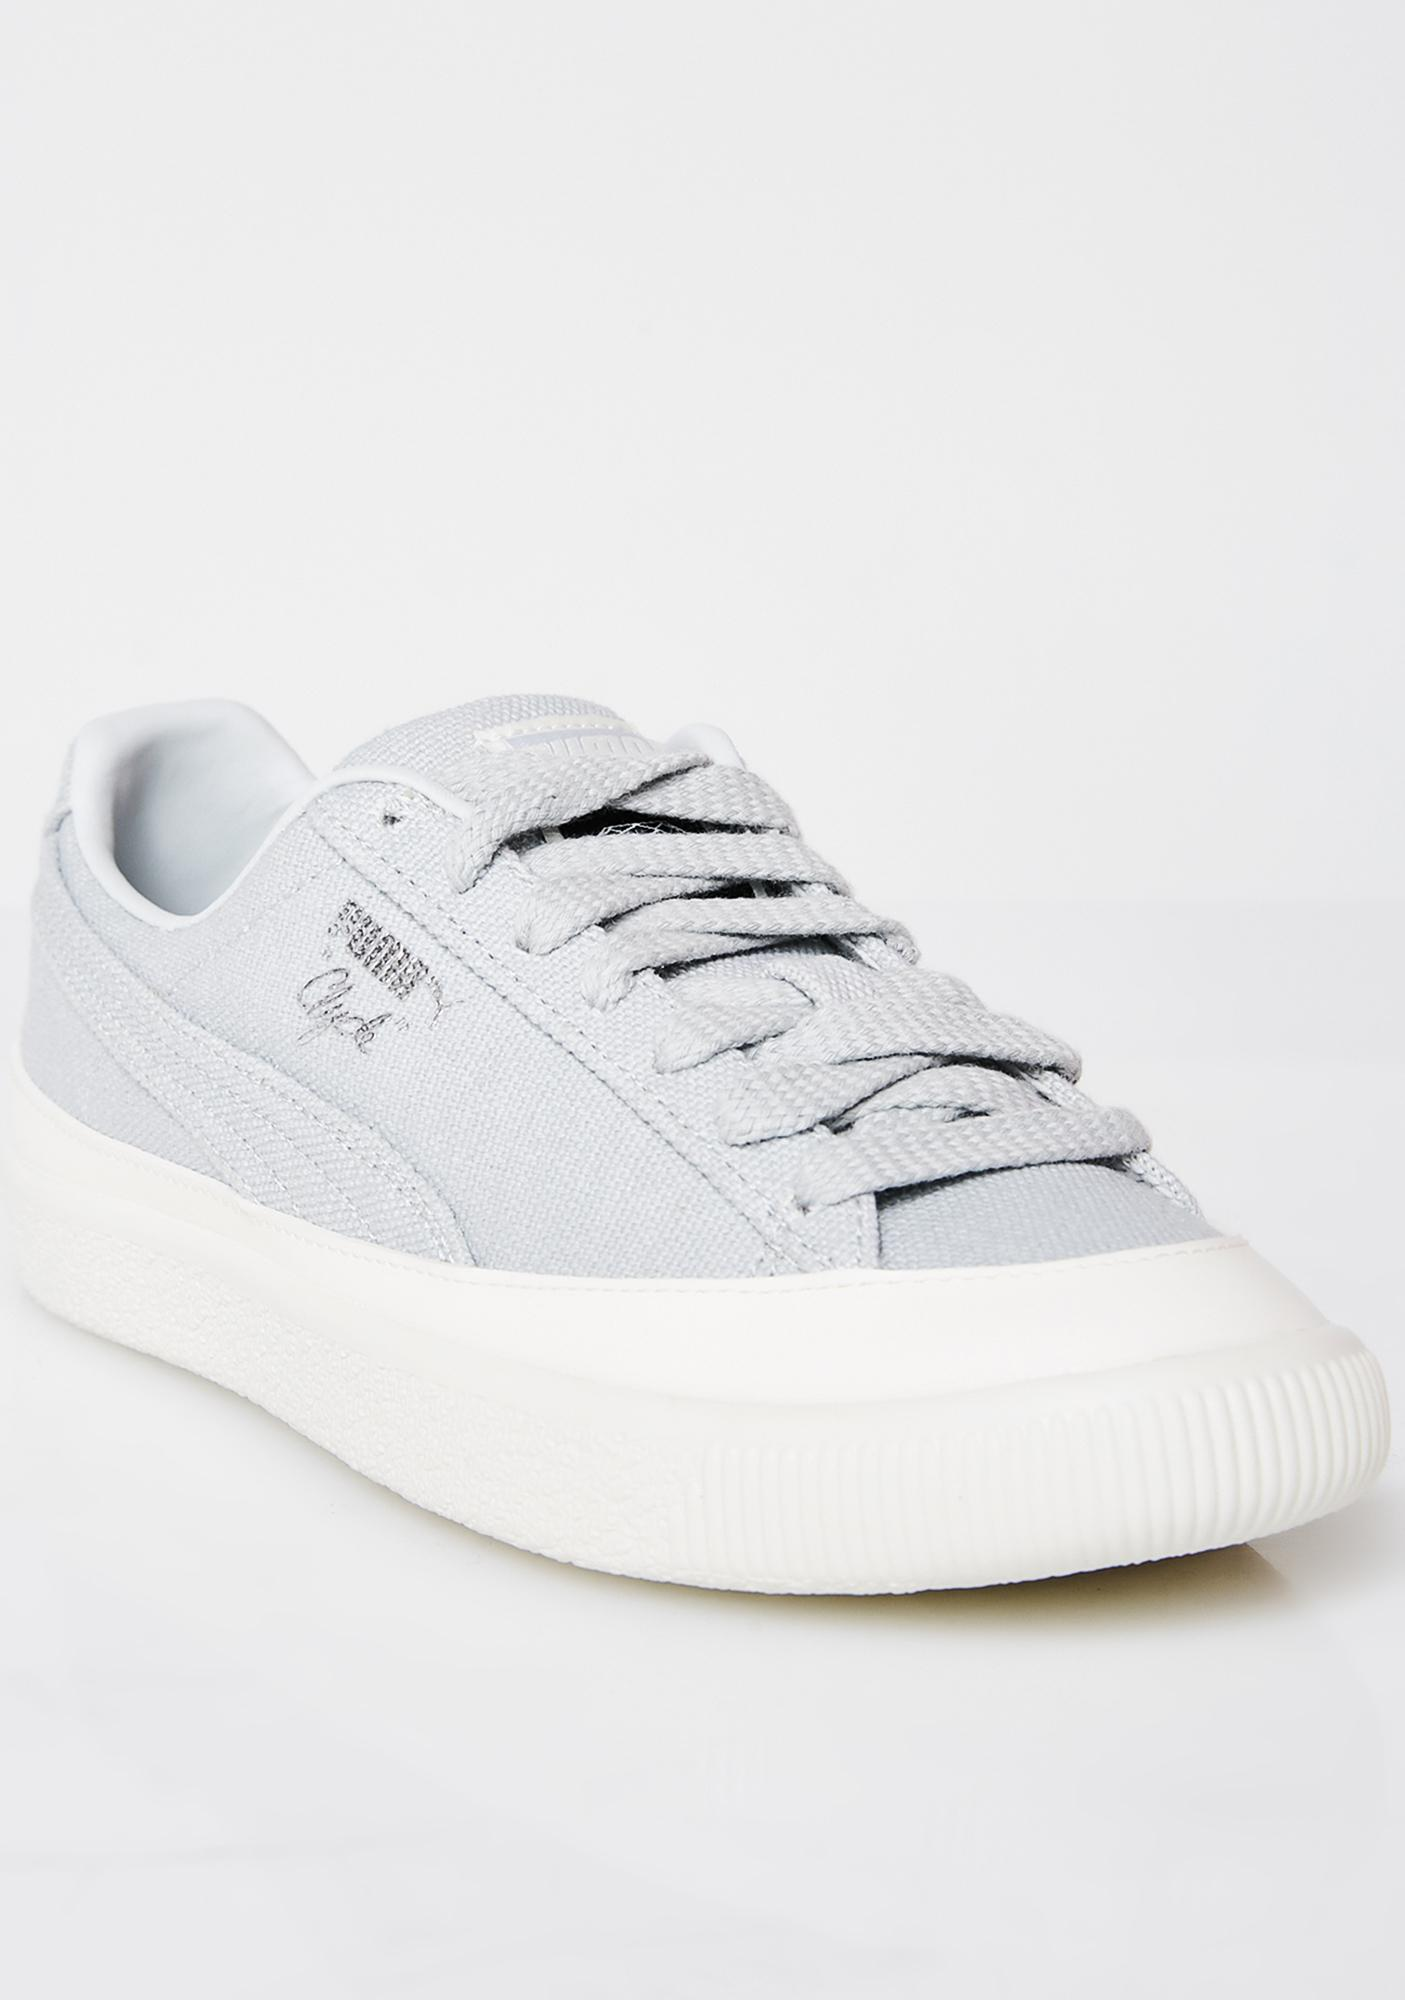 PUMA Clyde Diamond Sneakers